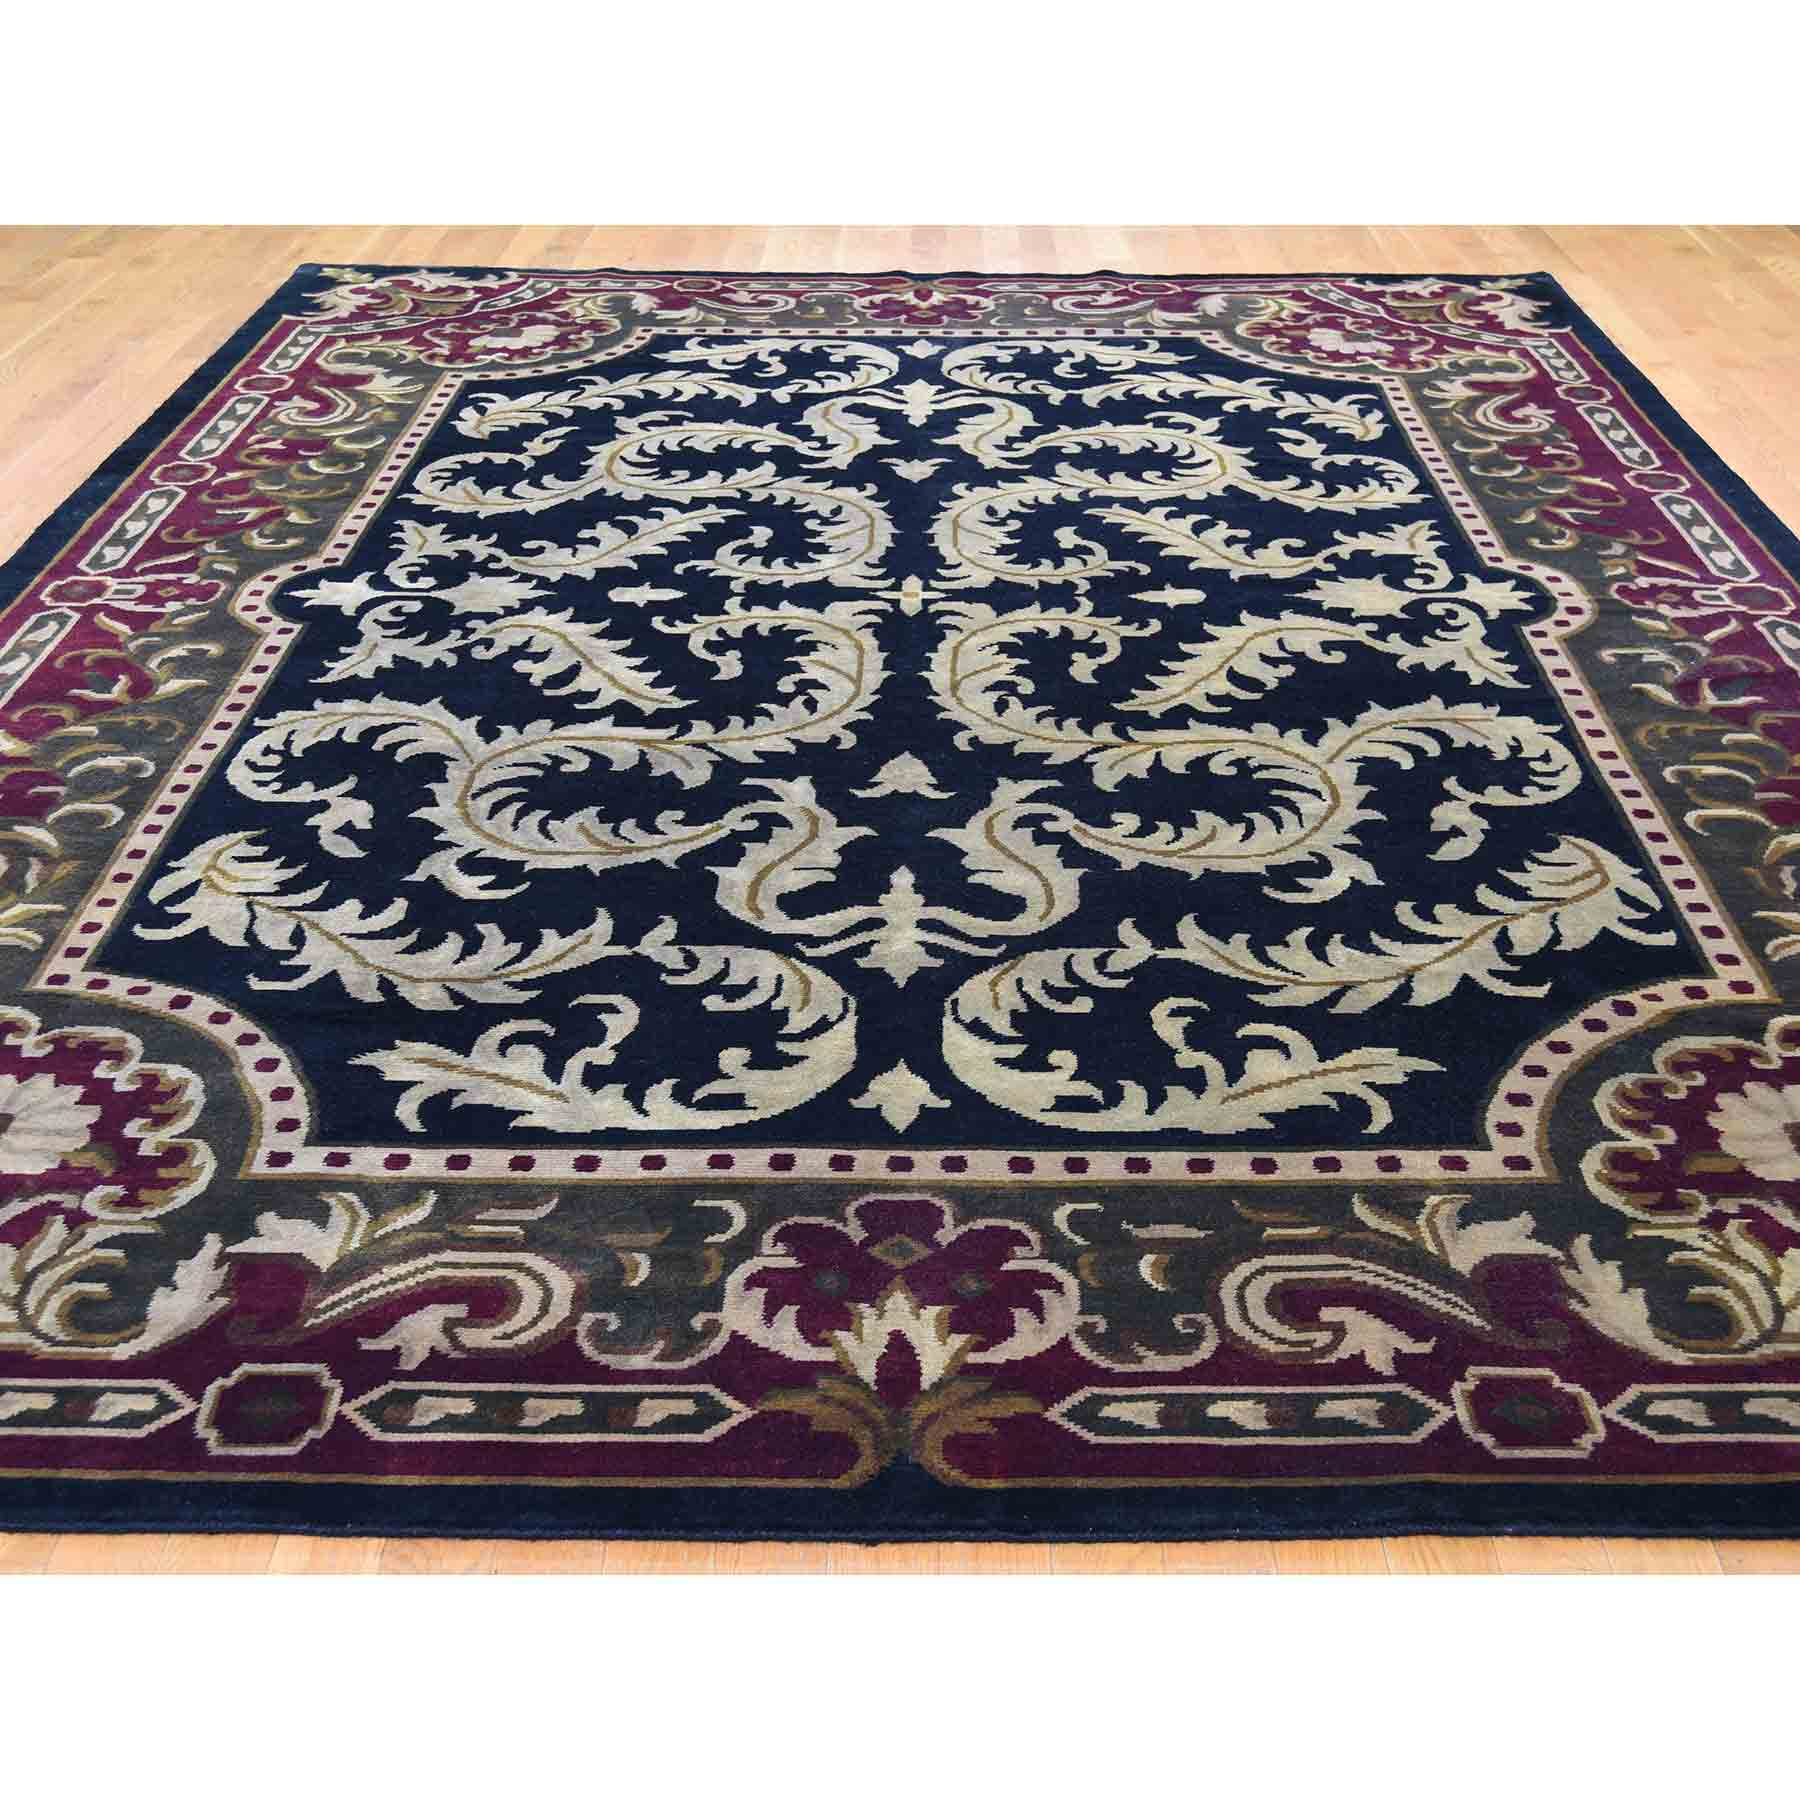 Clearance-Hand-Knotted-Rug-232490